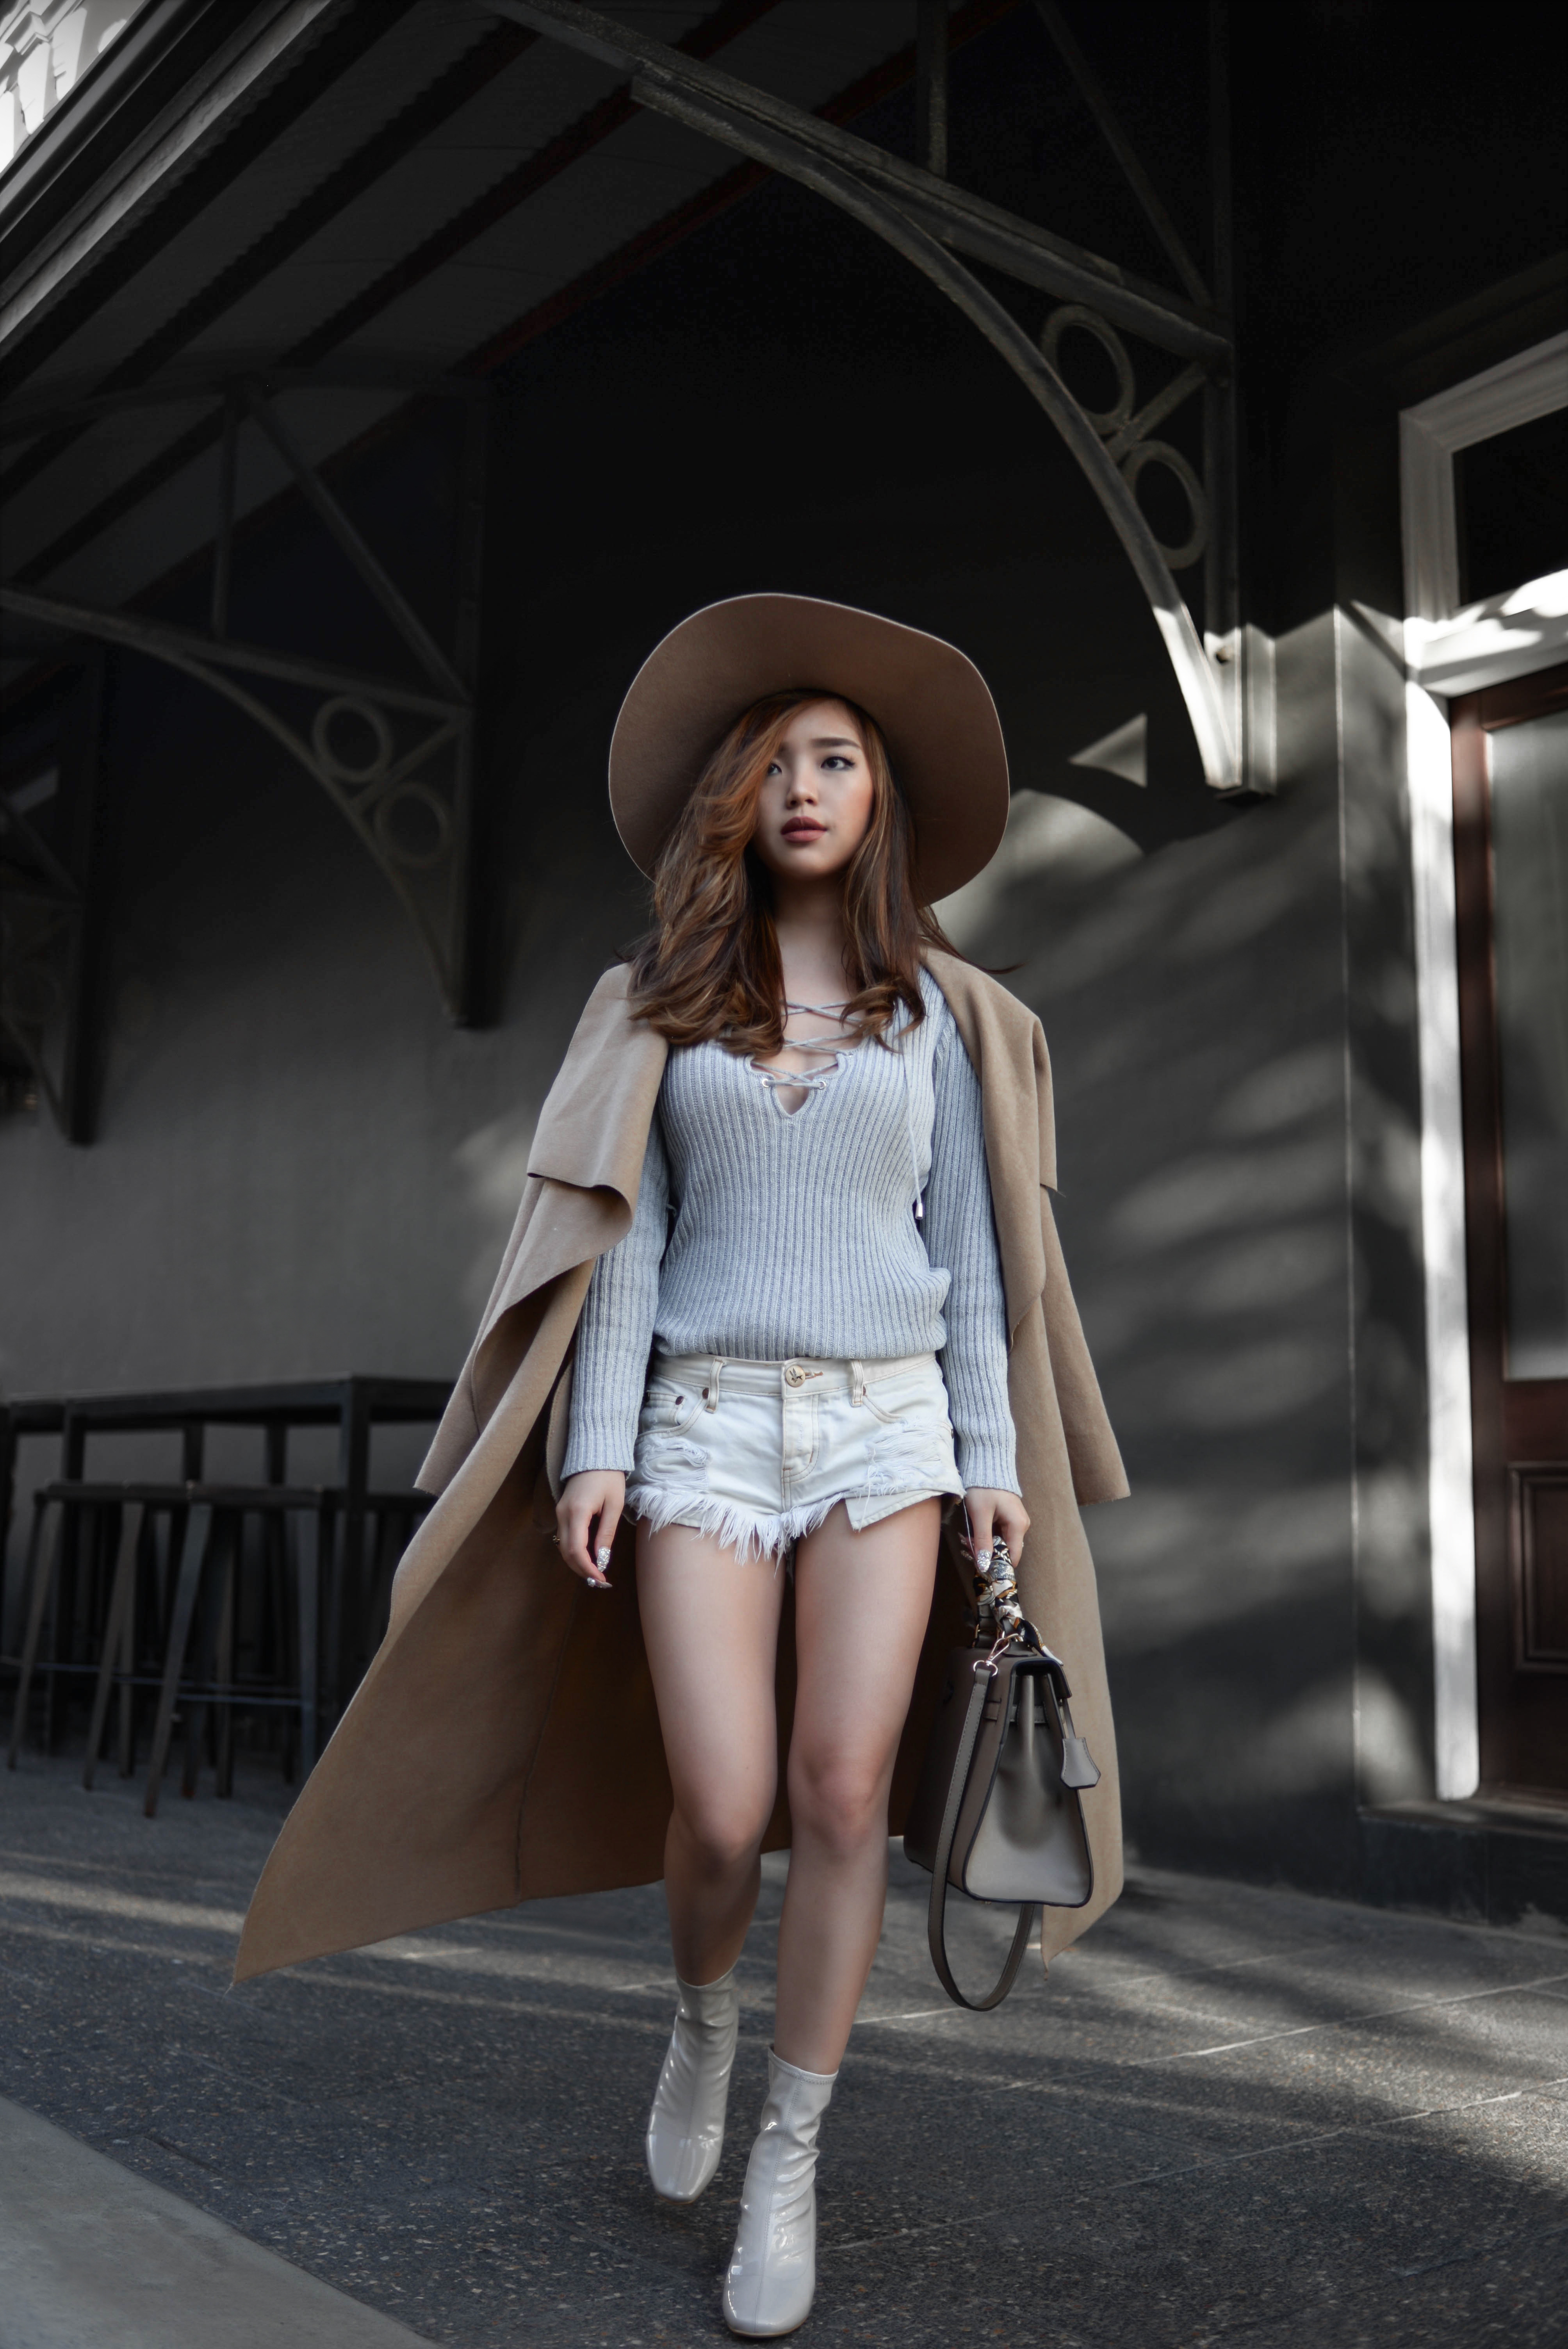 willabelle-ong-paledivision-street-style-fashion-travel-lifestyle-blog-singapore-australia-perth-perspex-heel-boots-denim-shorts-grey-outfit-editorial-fashionweek-1